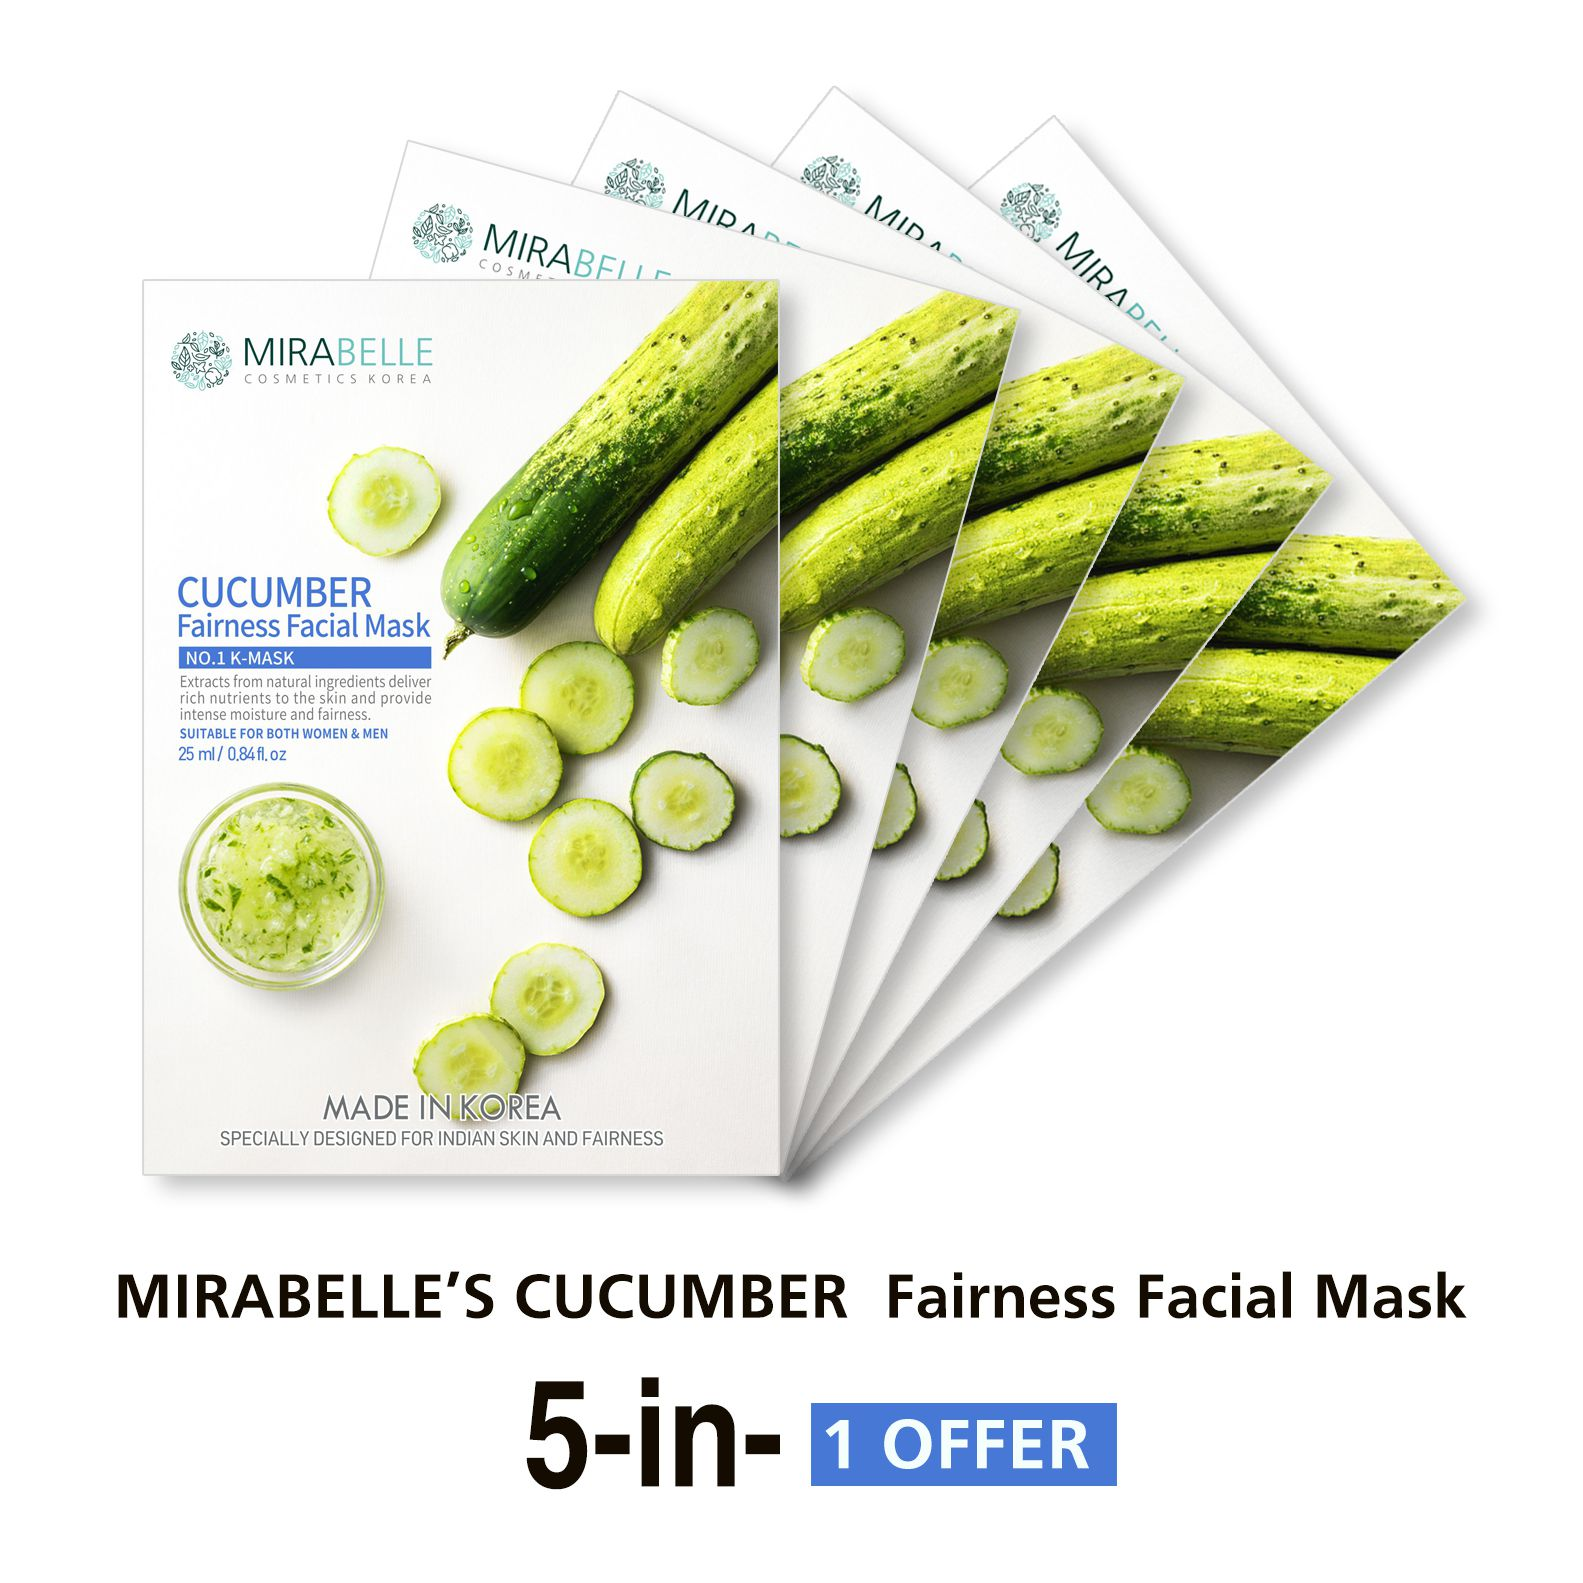 MIRABELLE KOREA CUCUMBER FAIRNESS Face Mask Each 25 ml Pack of 5